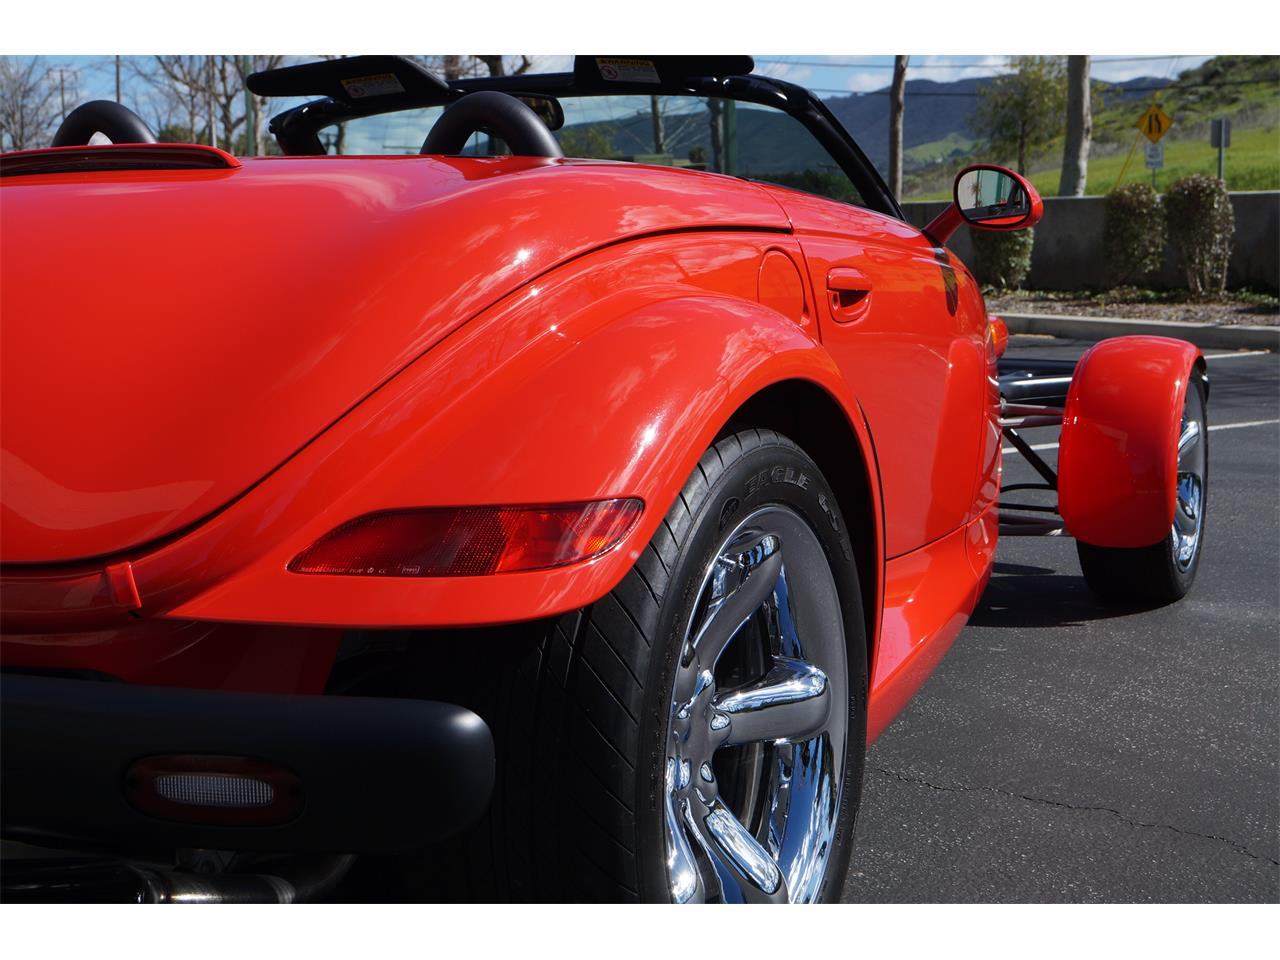 2000 Plymouth Prowler for sale in Thousand Oaks, CA – photo 37